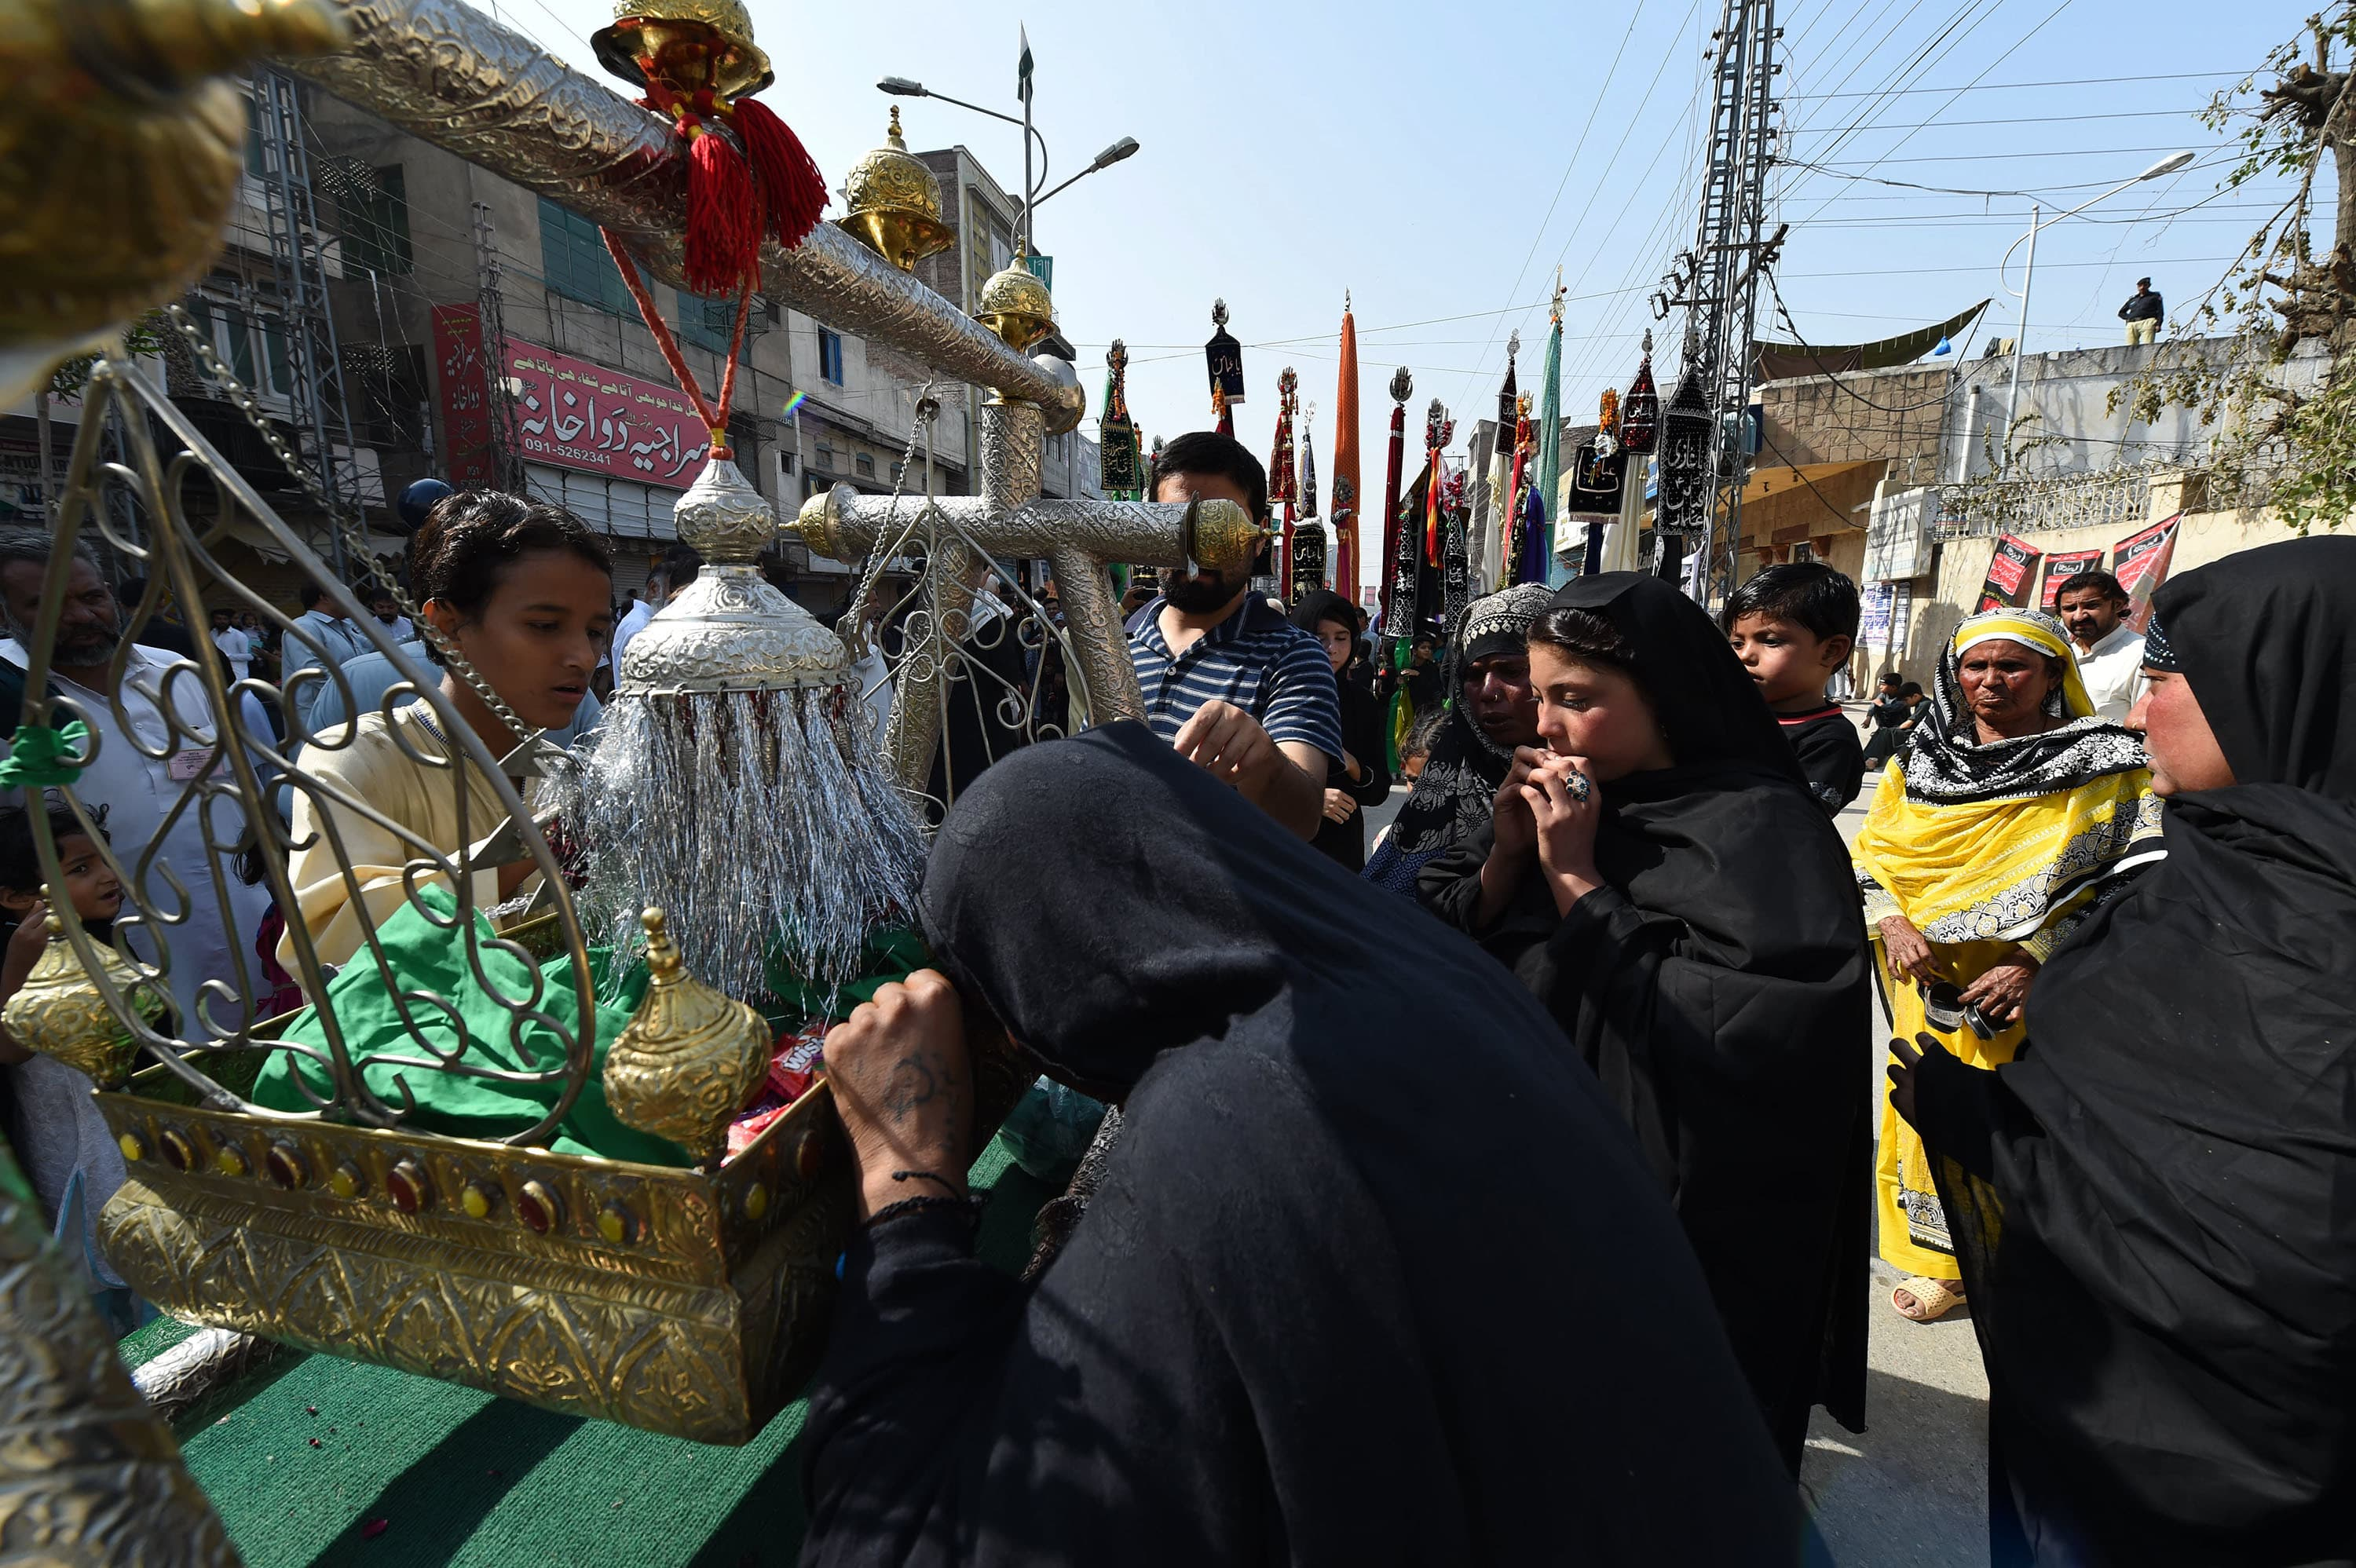 Women pay respects to the tazias in Peshawar | White Star